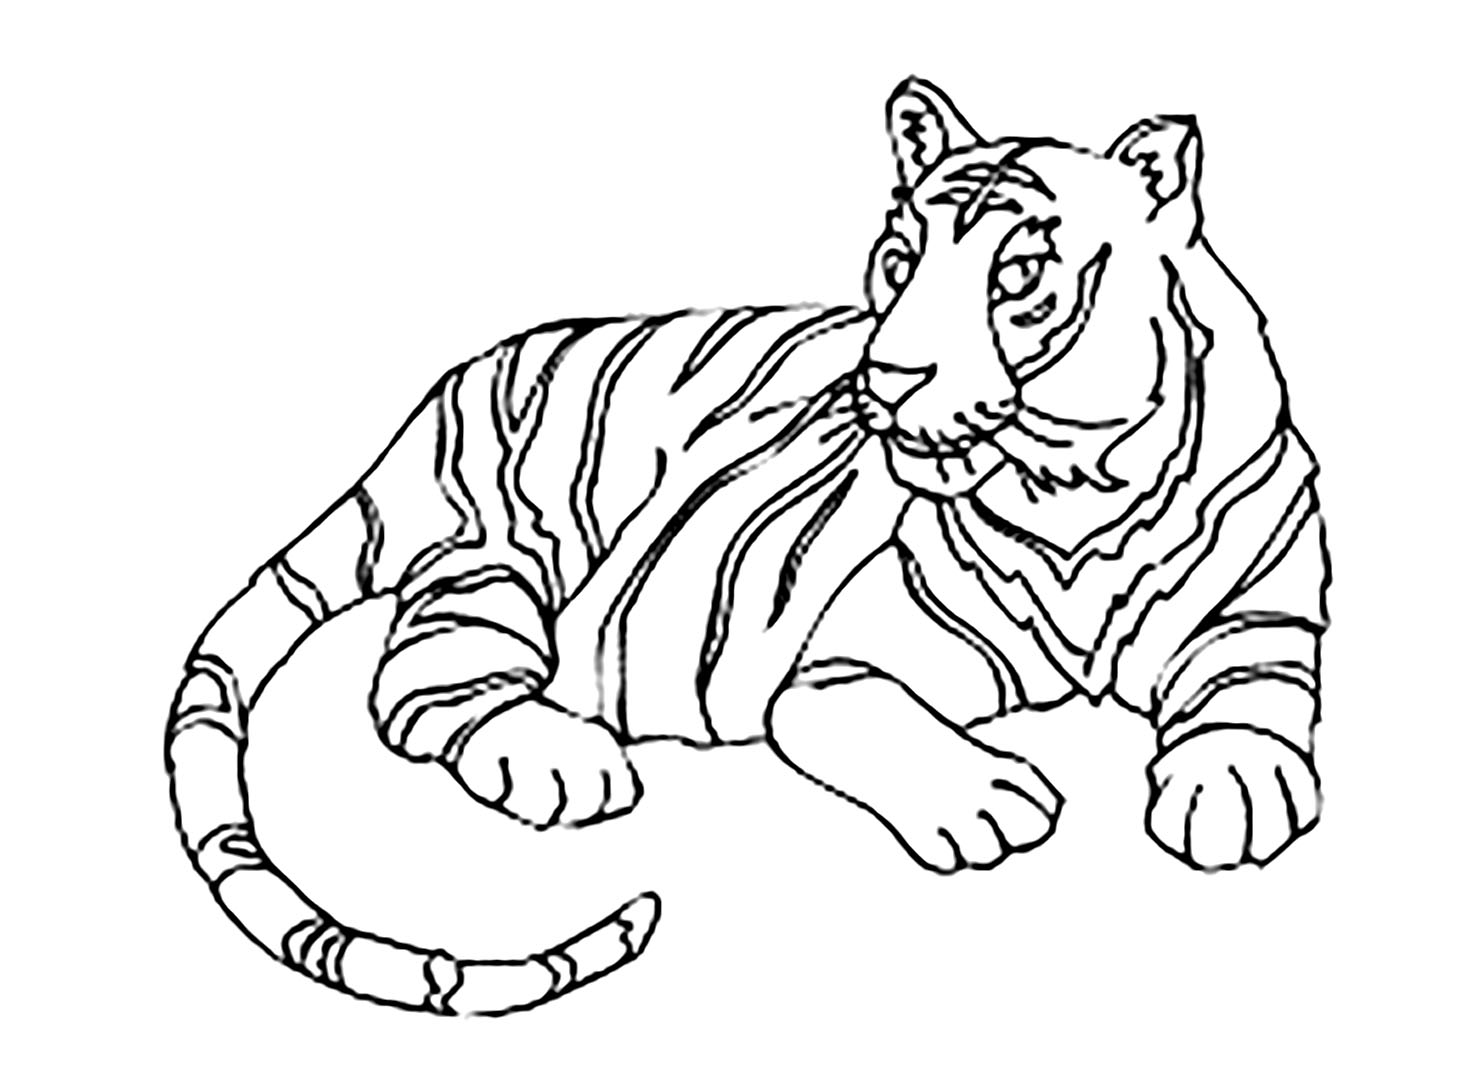 tiger coloring book get this tiger coloring pages for adults 76312 book tiger coloring